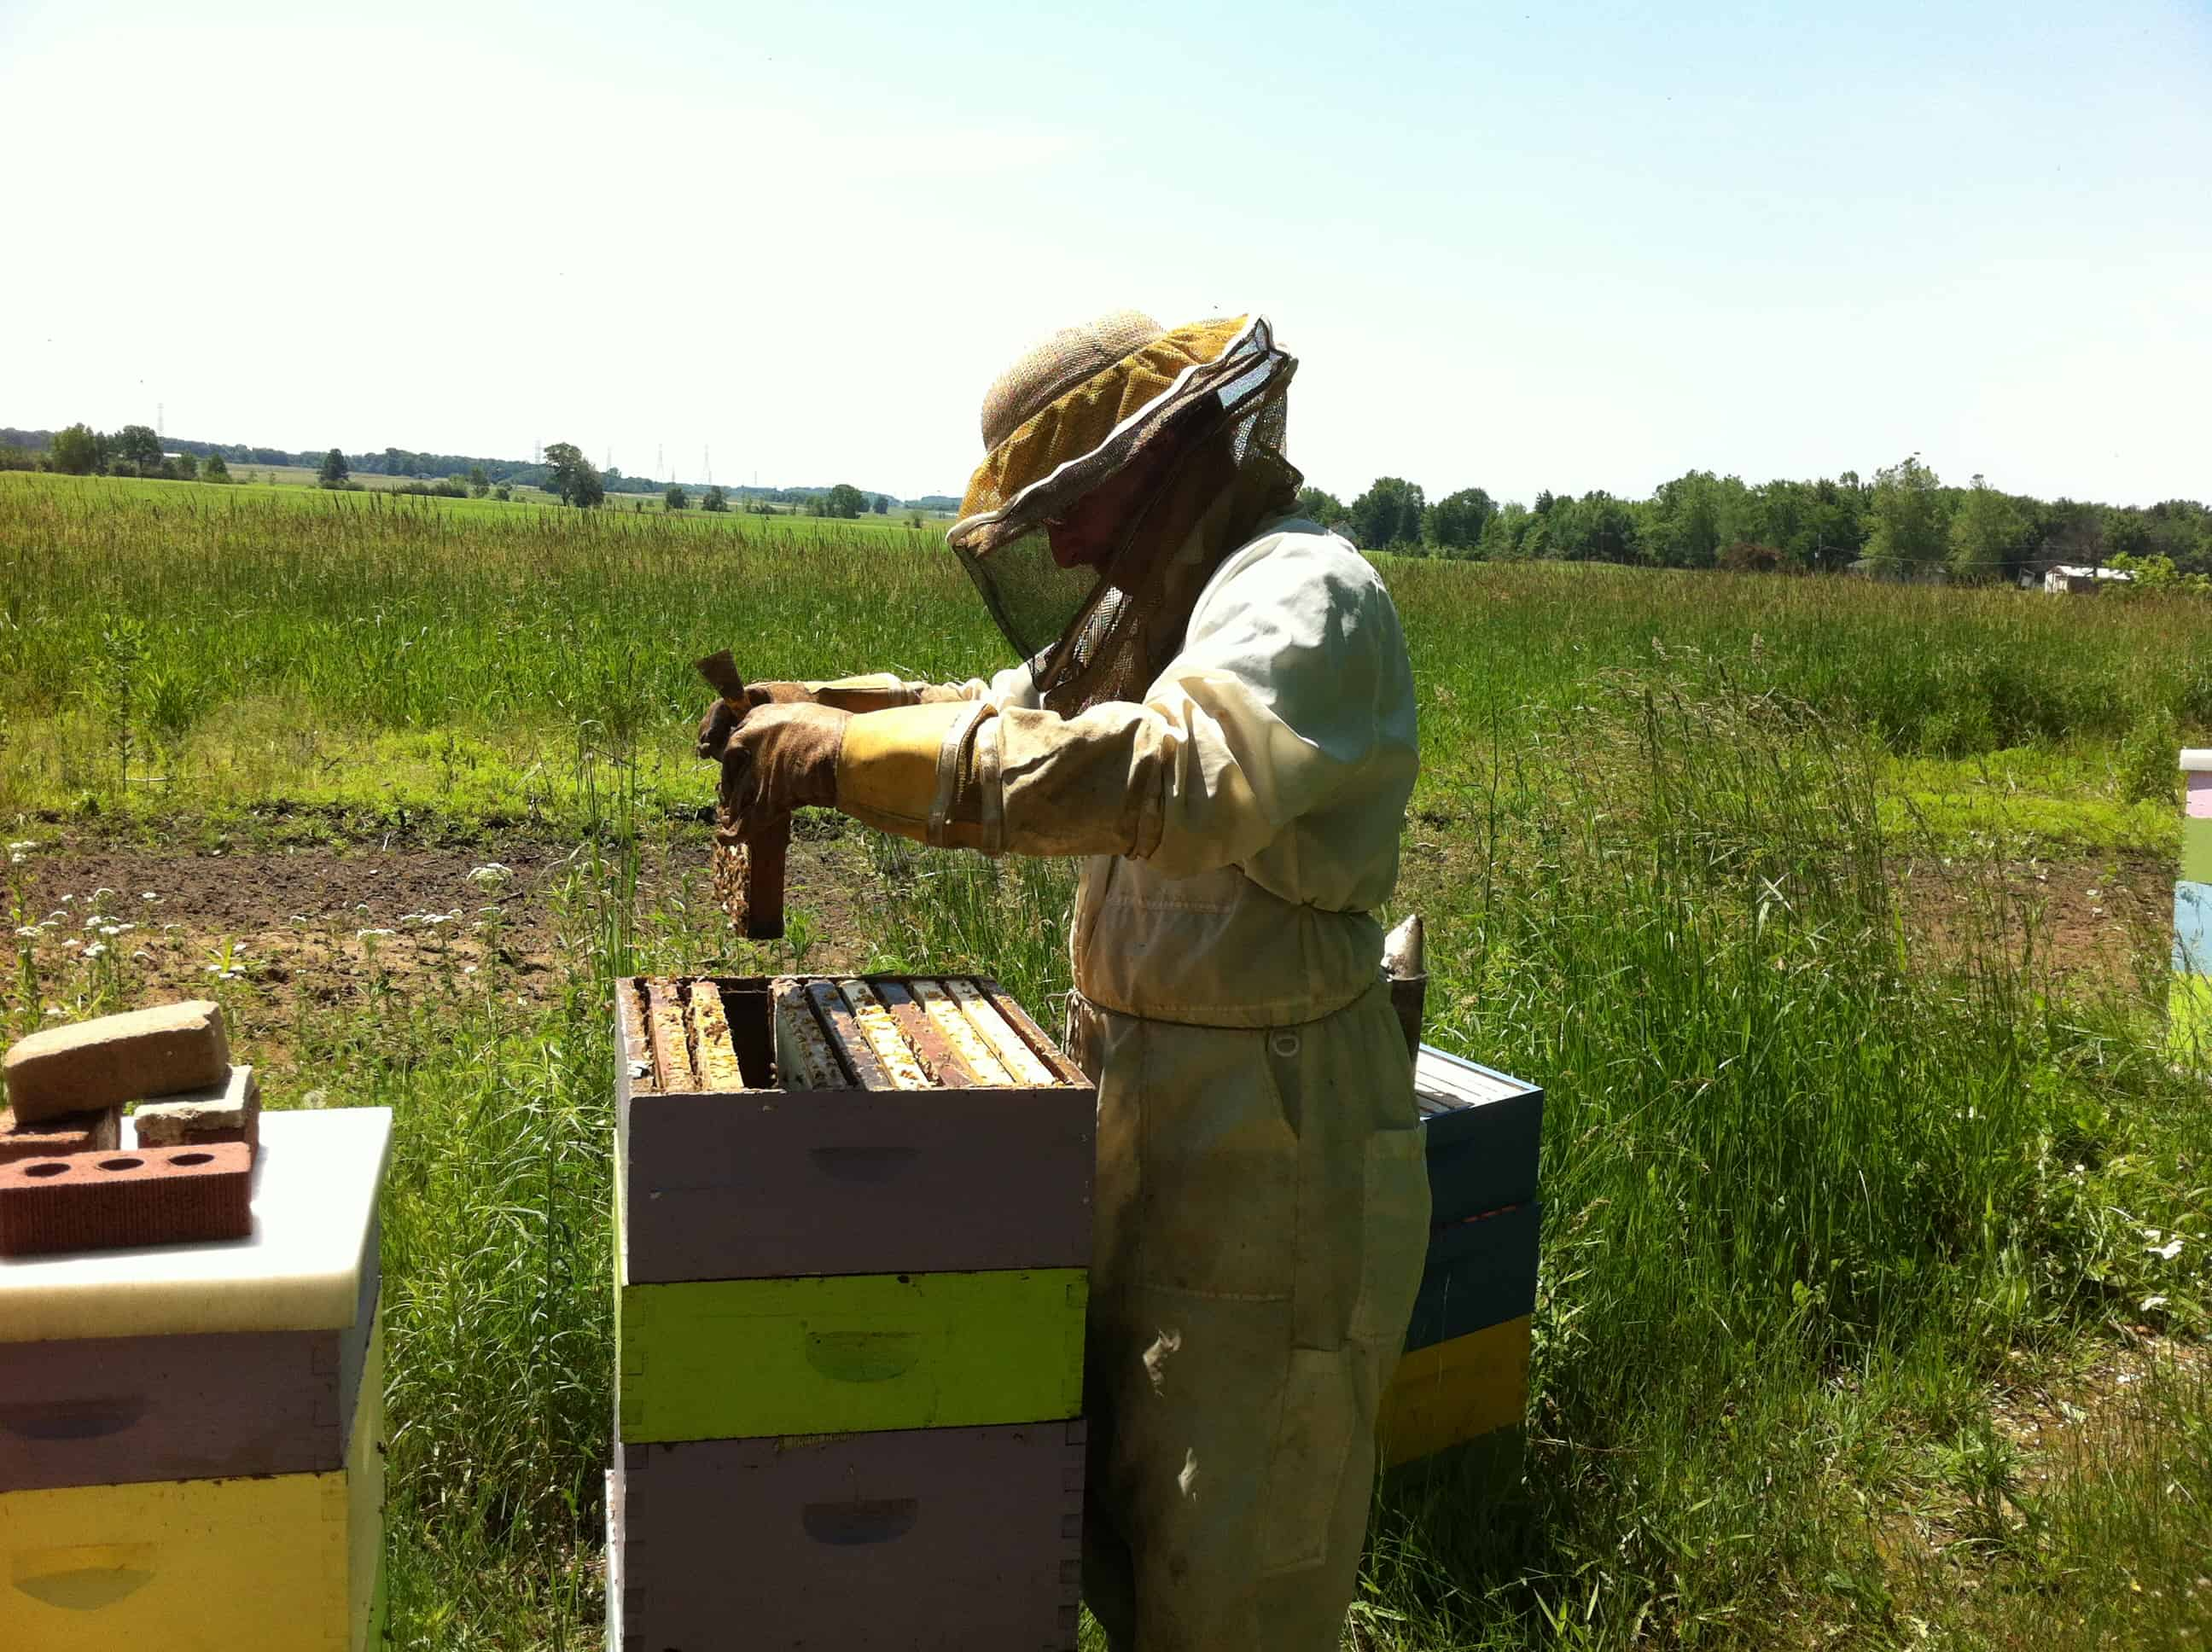 Tutorial (1): So you want to be a beekeeper?